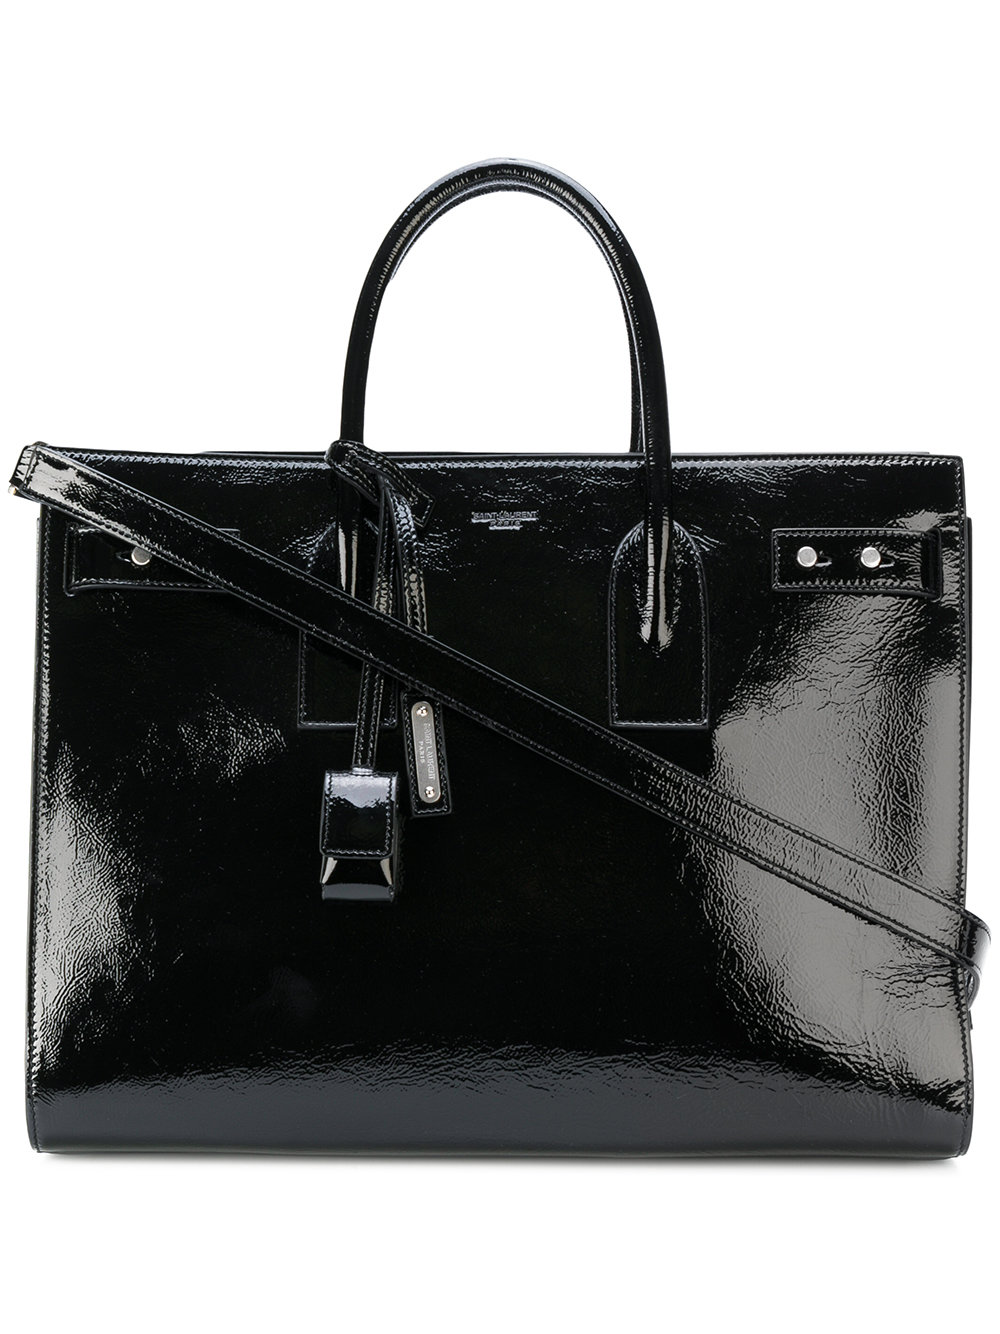 SAINT LAURENT Sac de Jour - $3,250